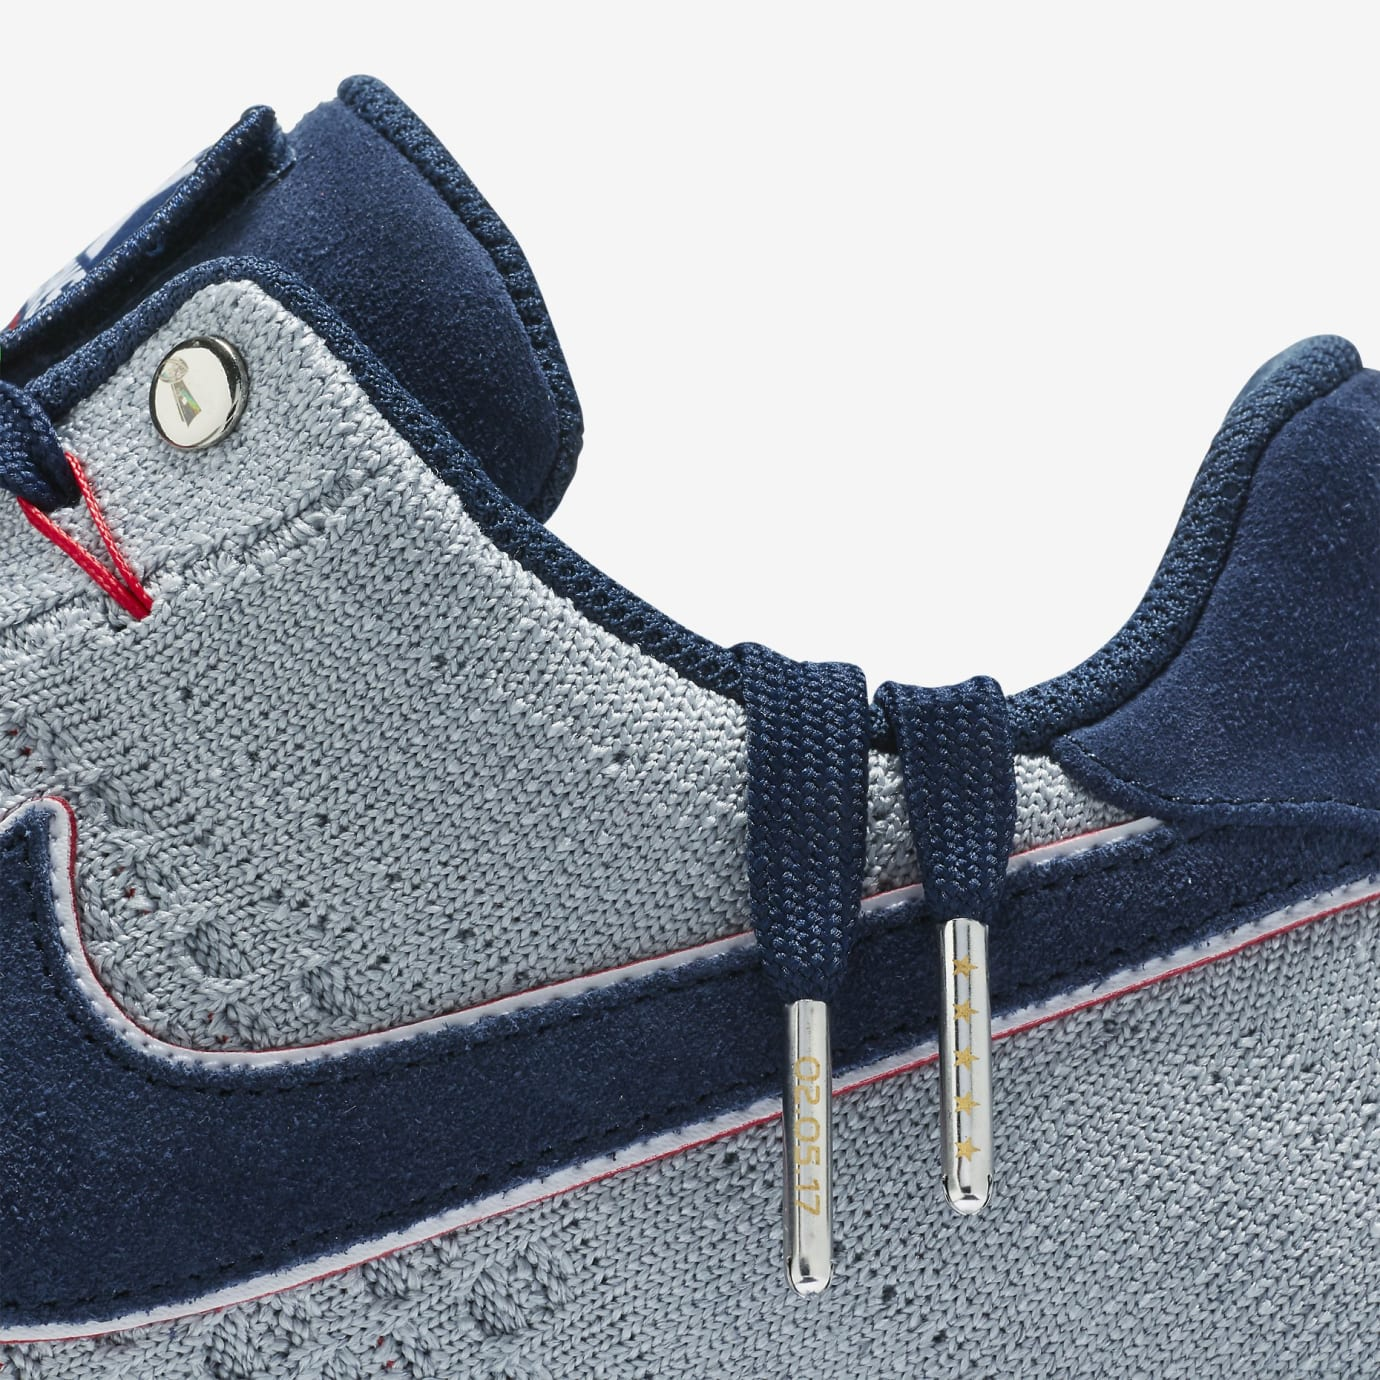 Nike Air Force 1 Ultra Flyknit RKK Patriots AH8425-001 (Detail)